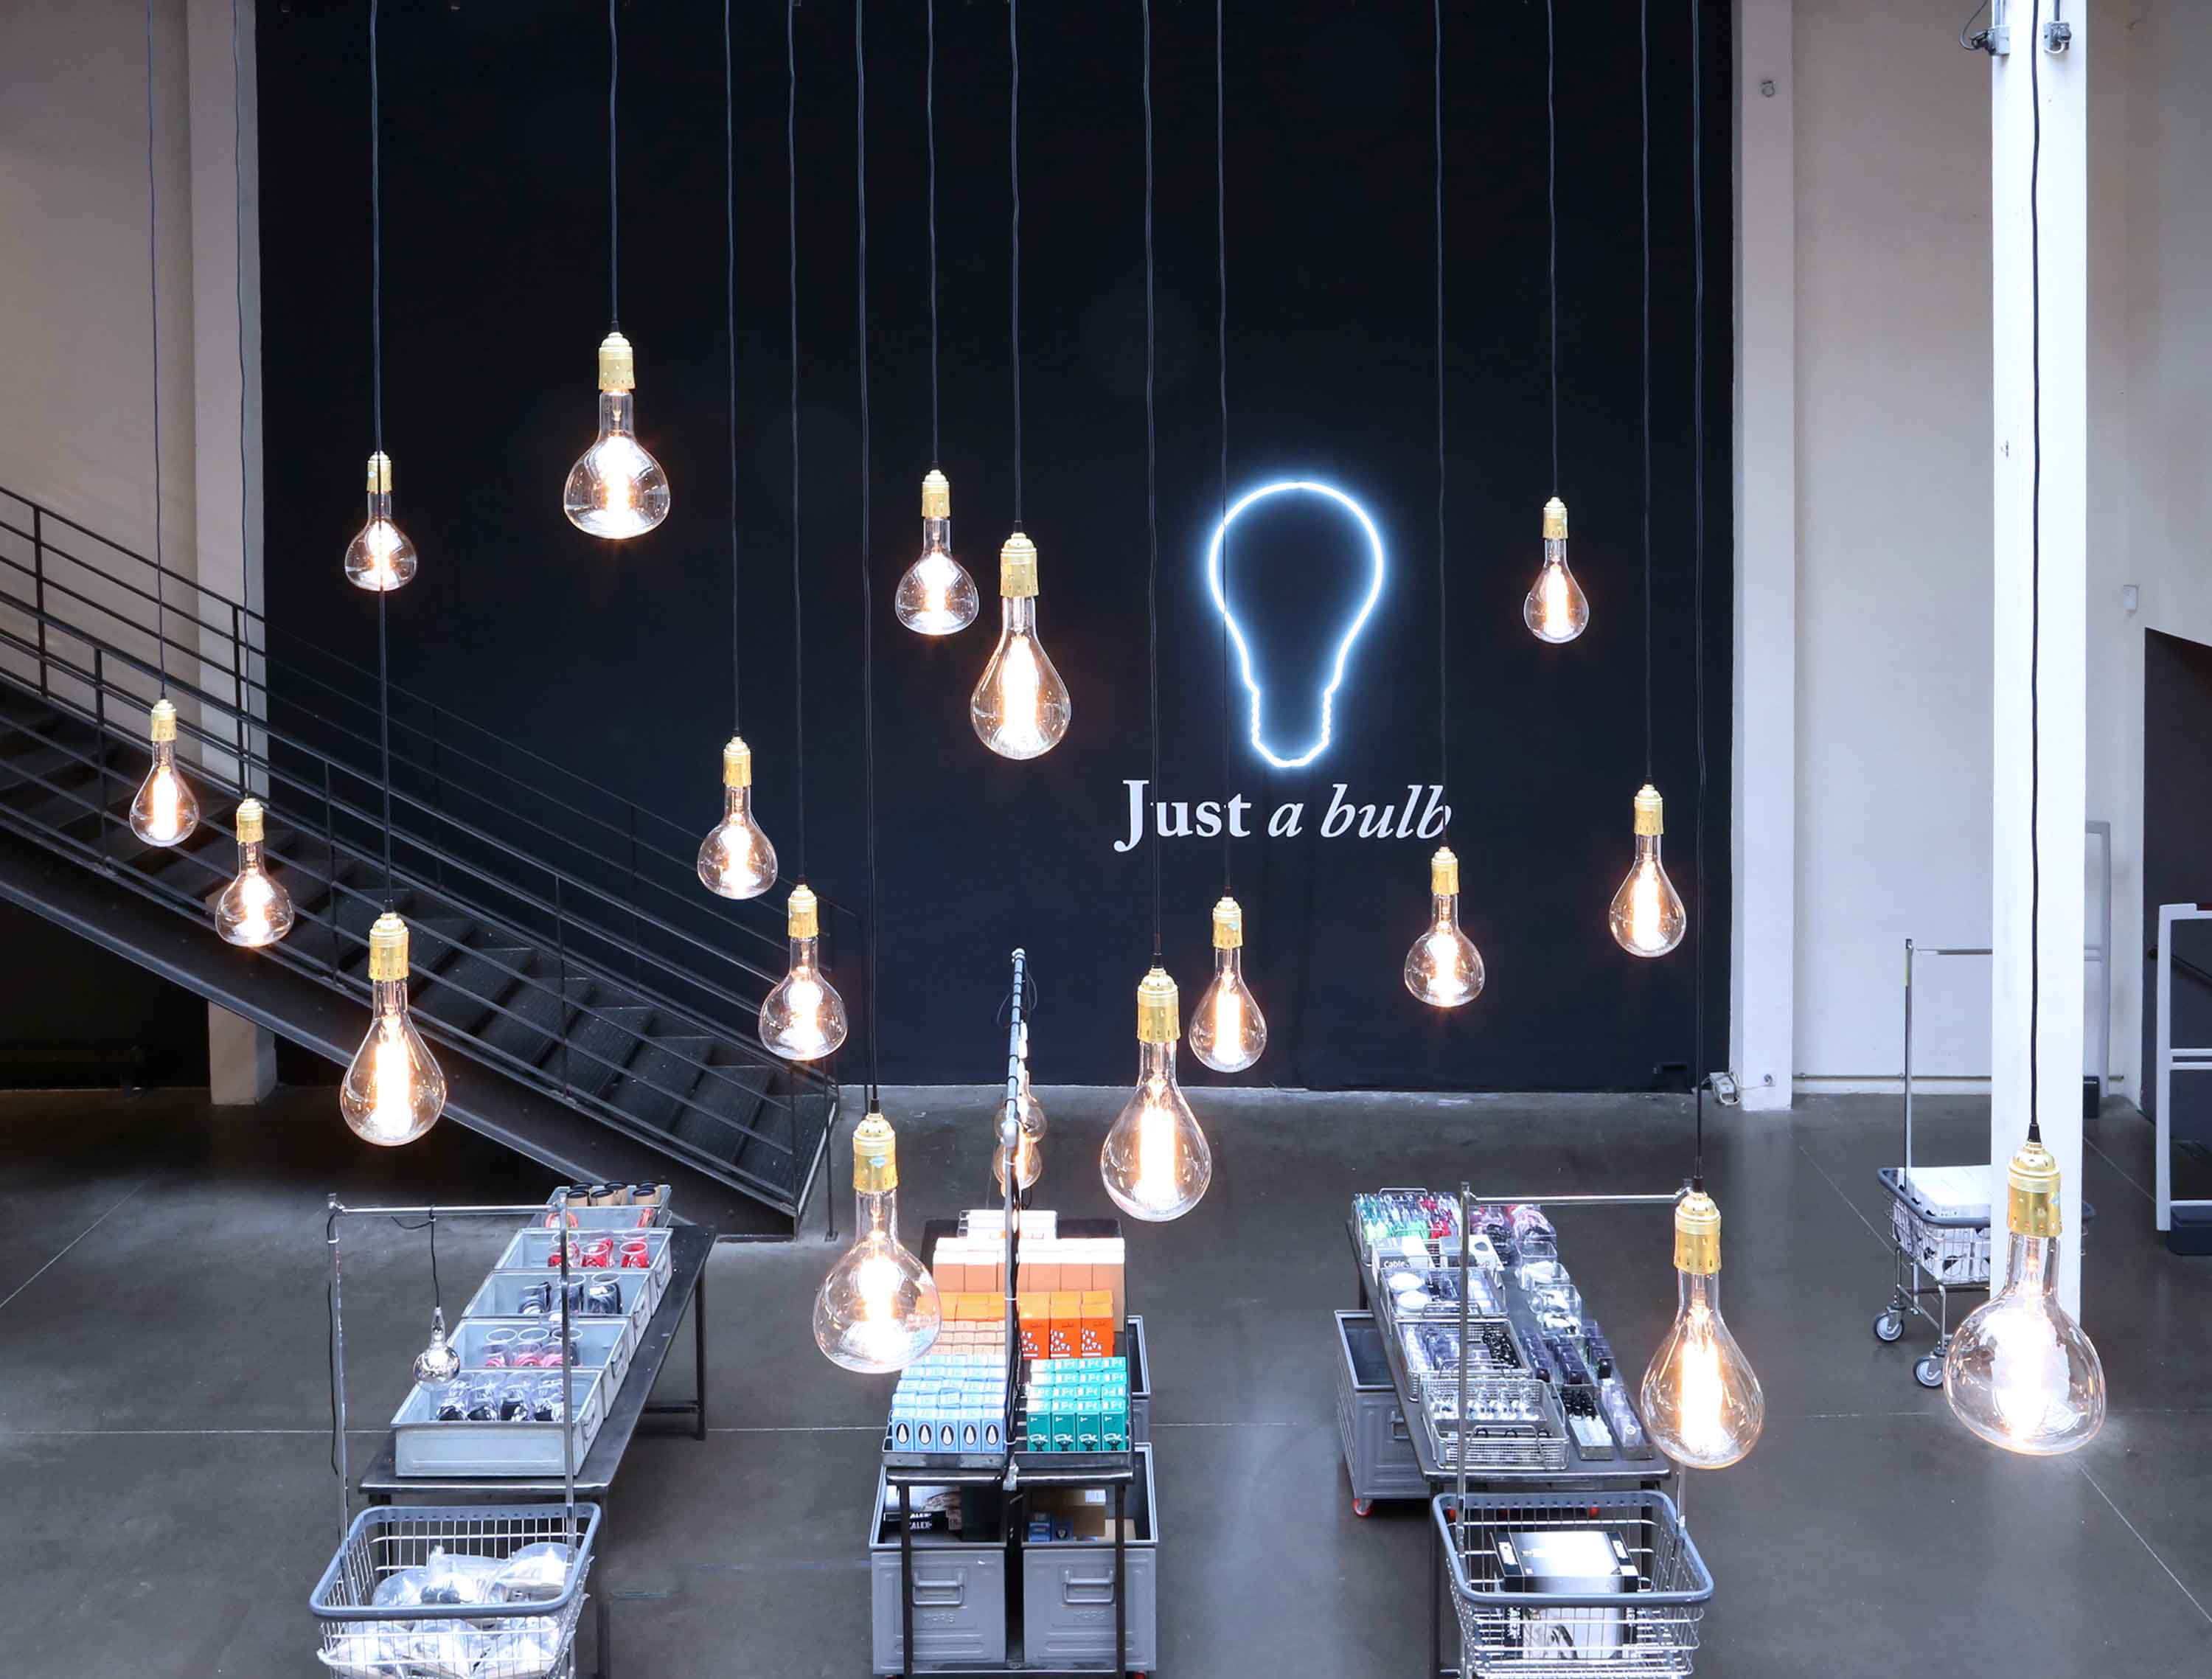 10-15-Photo-Installation-JUST-A-BULB-1-BD